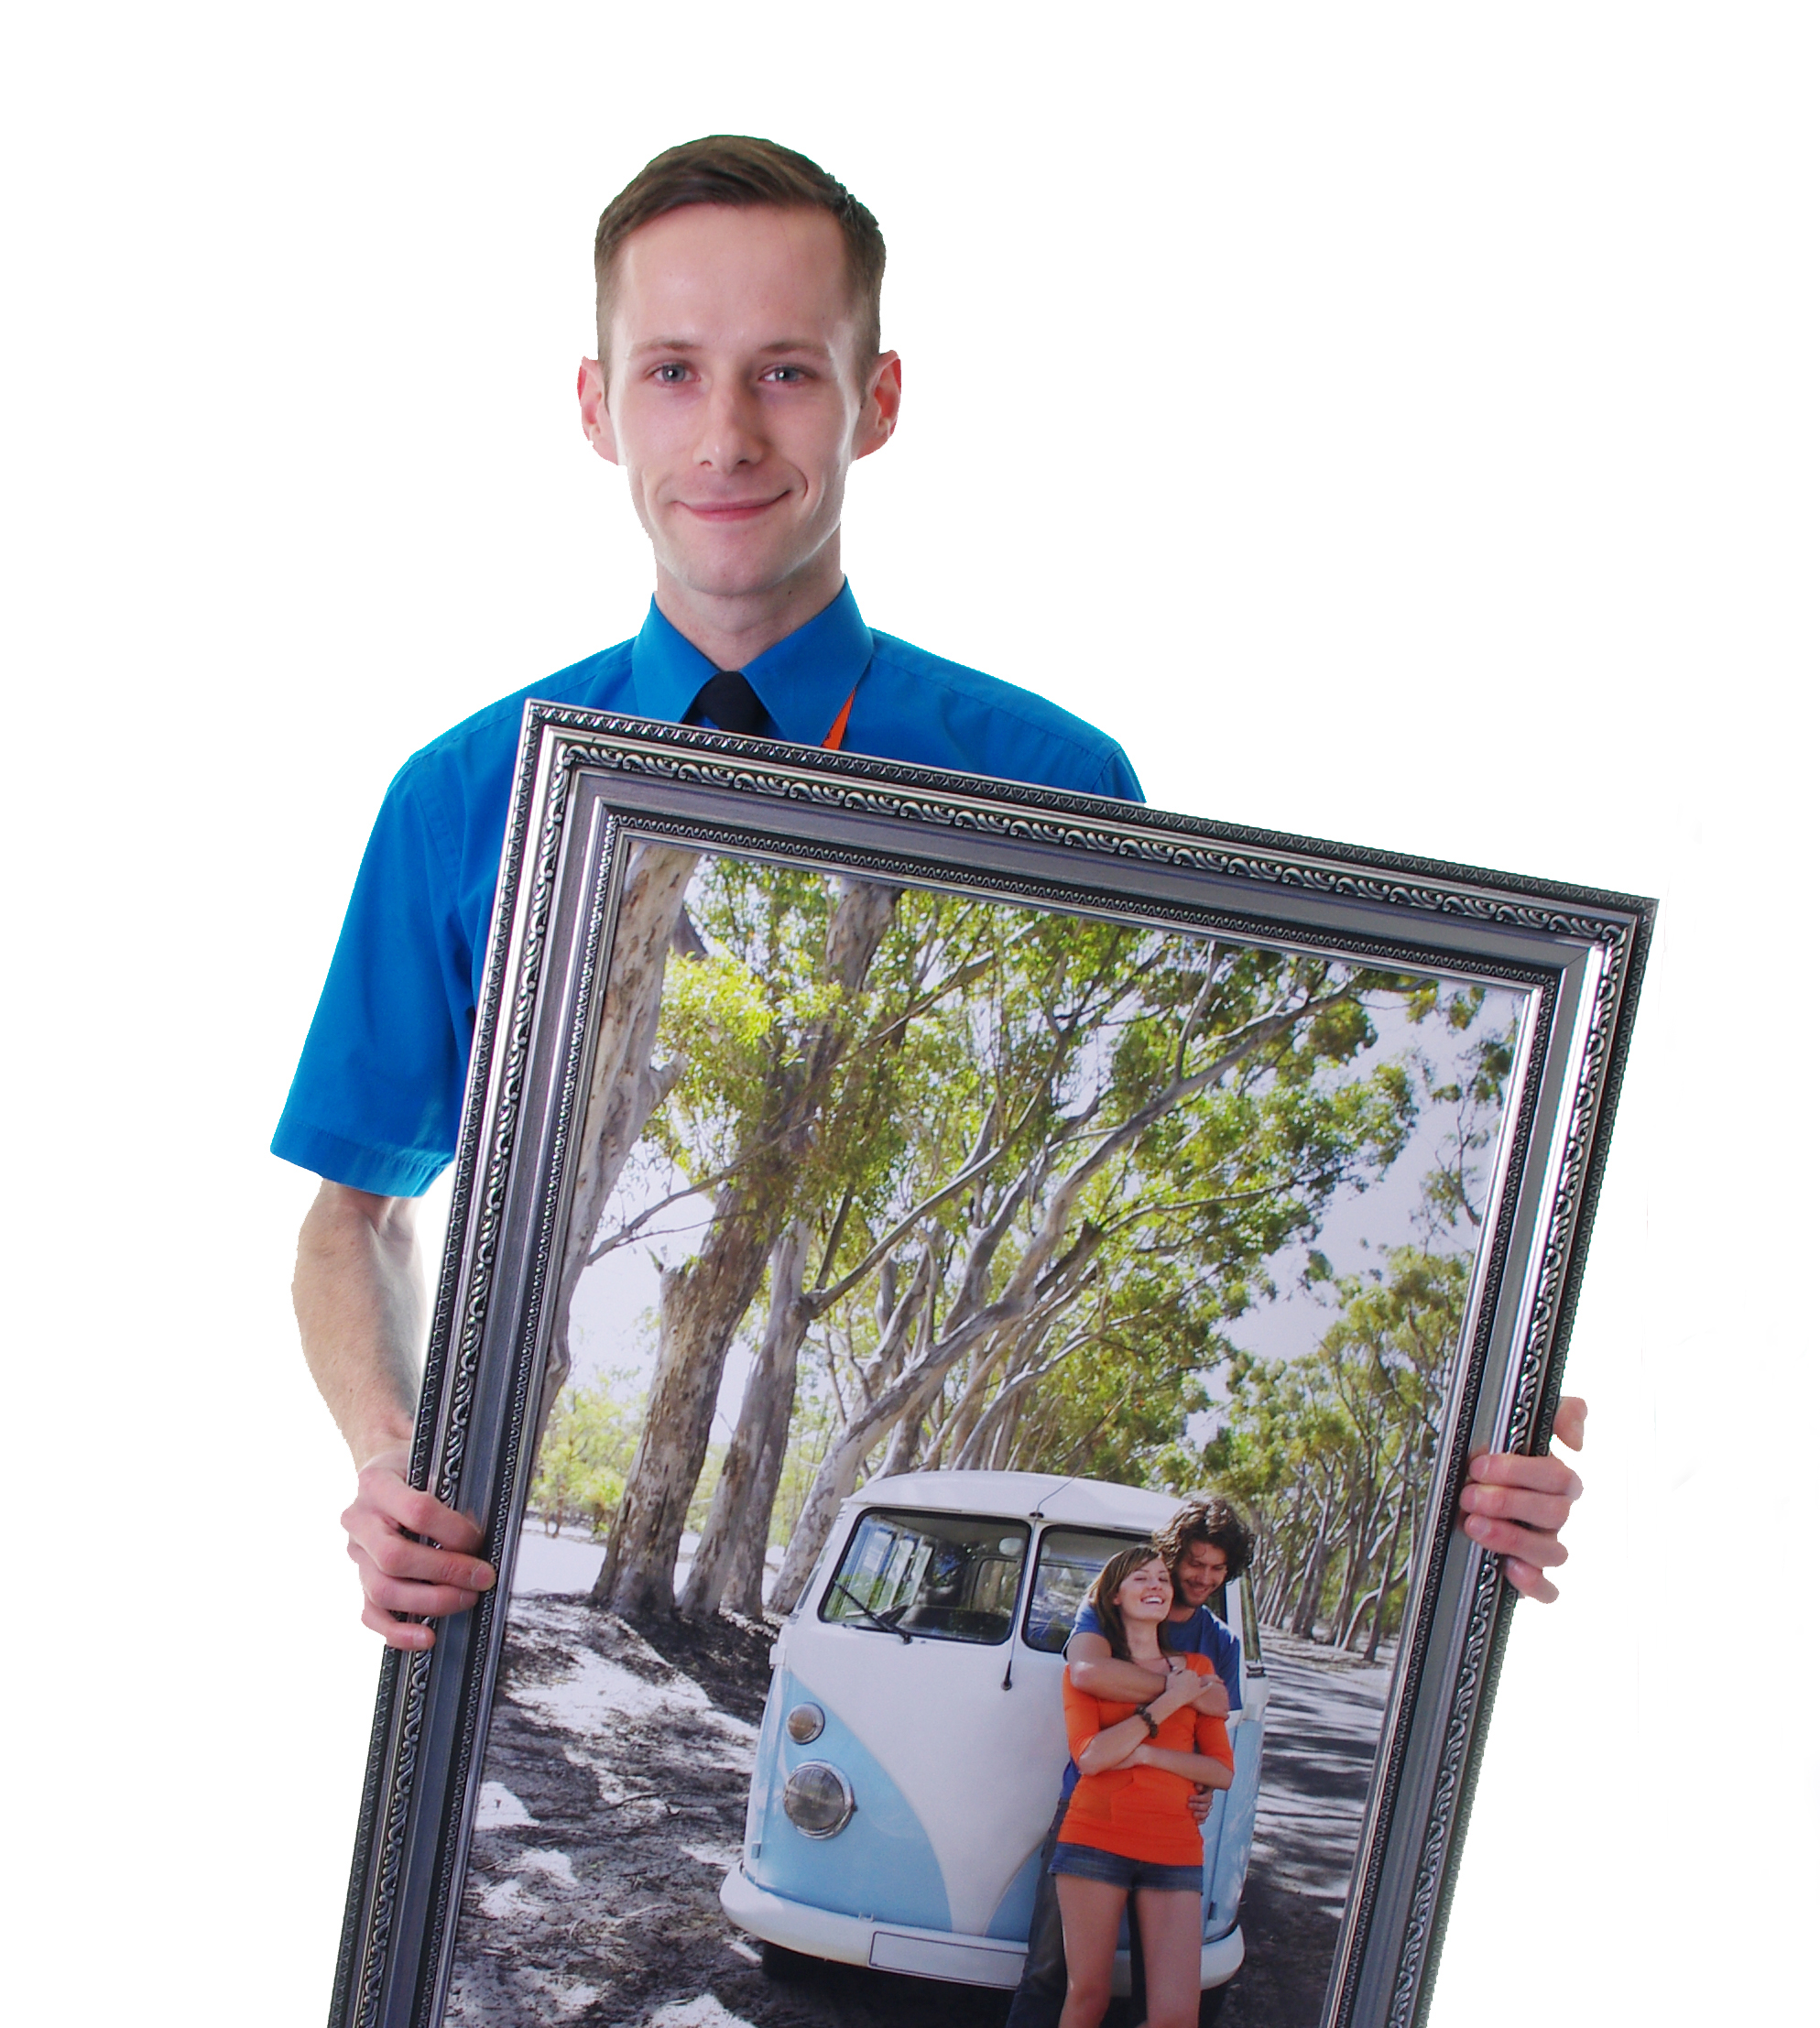 Photo poster printing, supersize your memories - Max Spielmann